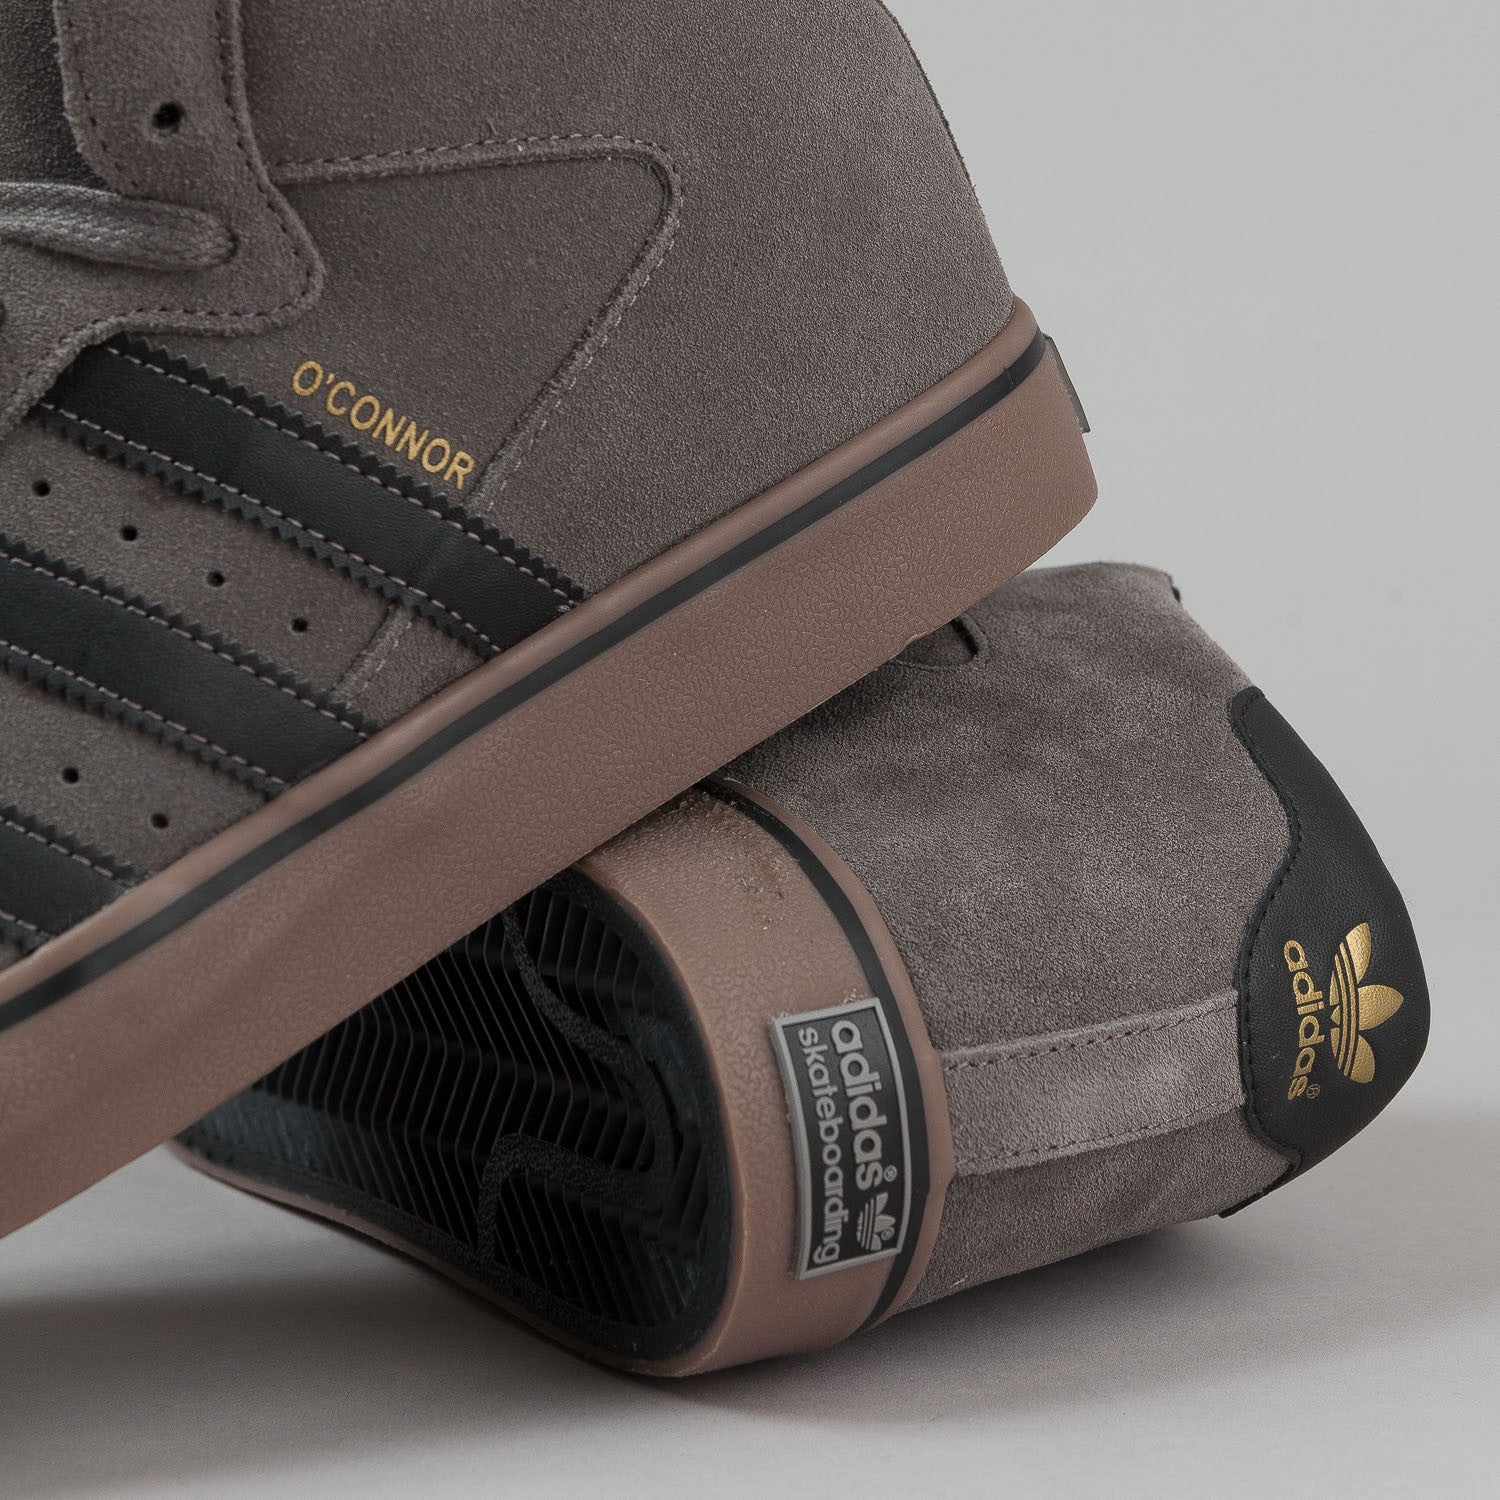 Adidas Campus Vulc Mid 'O'Connor' Shoes - Iron / Black / Metallic Gold